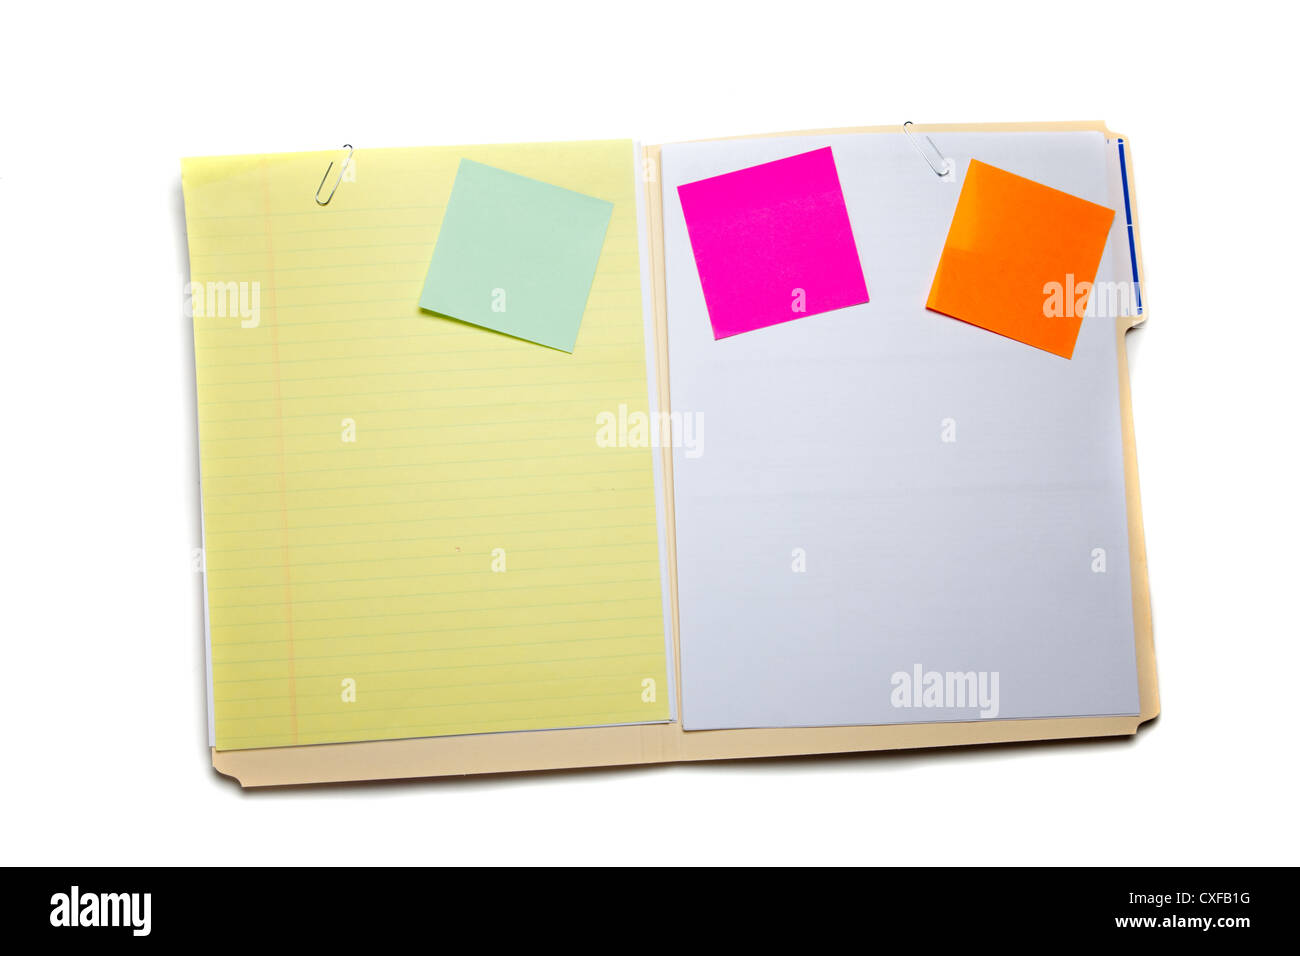 Folder with post it notes and paper - Stock Image